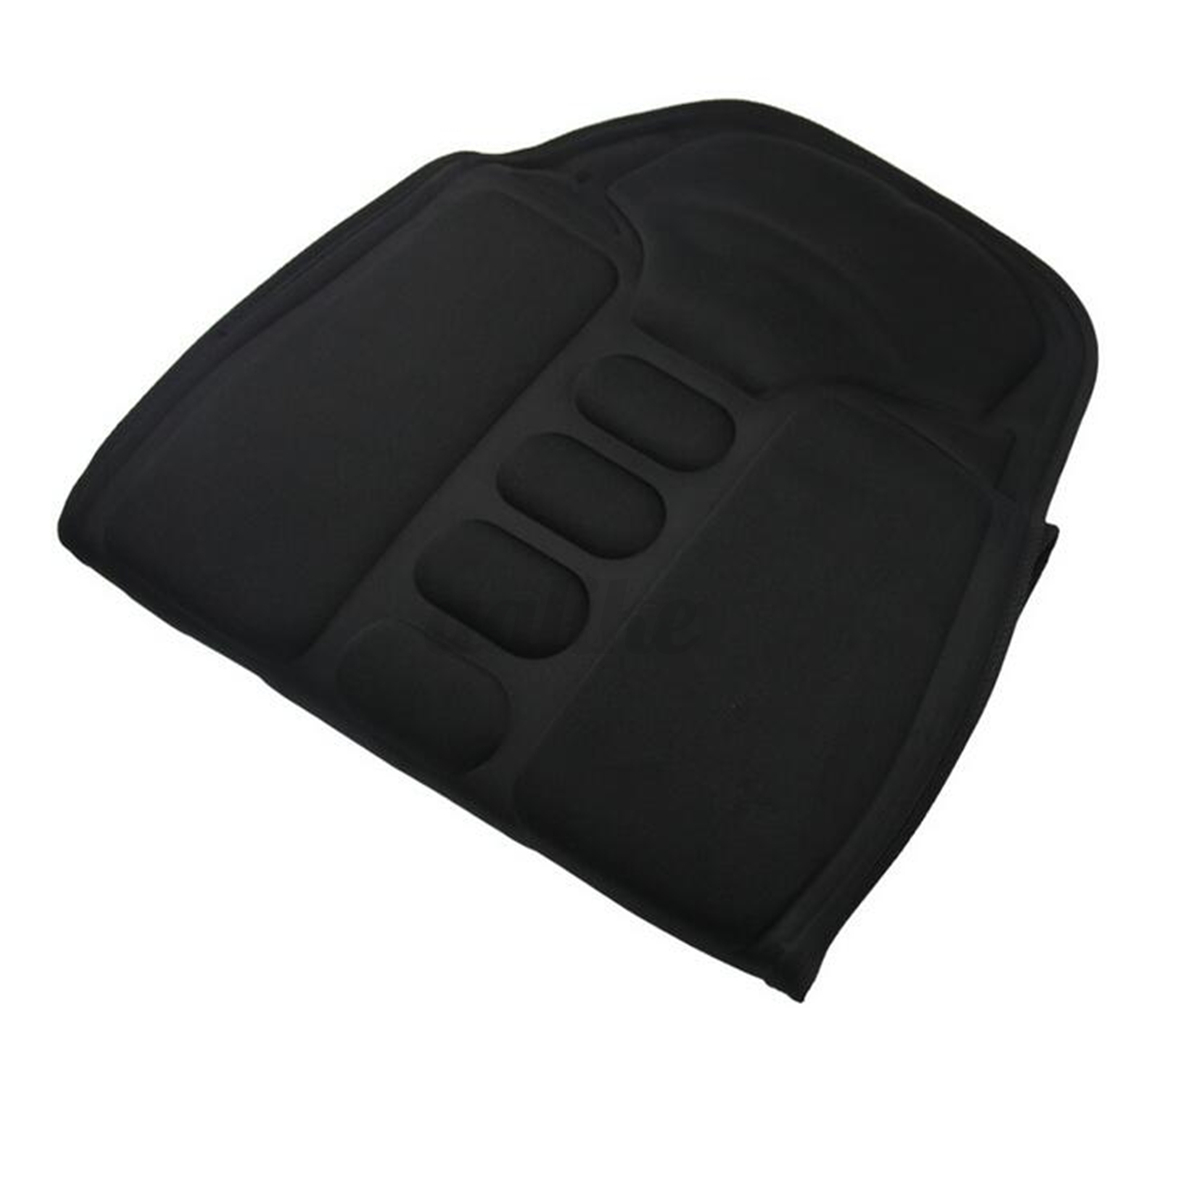 Massage Pad For Chair Car Massage Chair Heated Seat Massager Cushion Lumbar